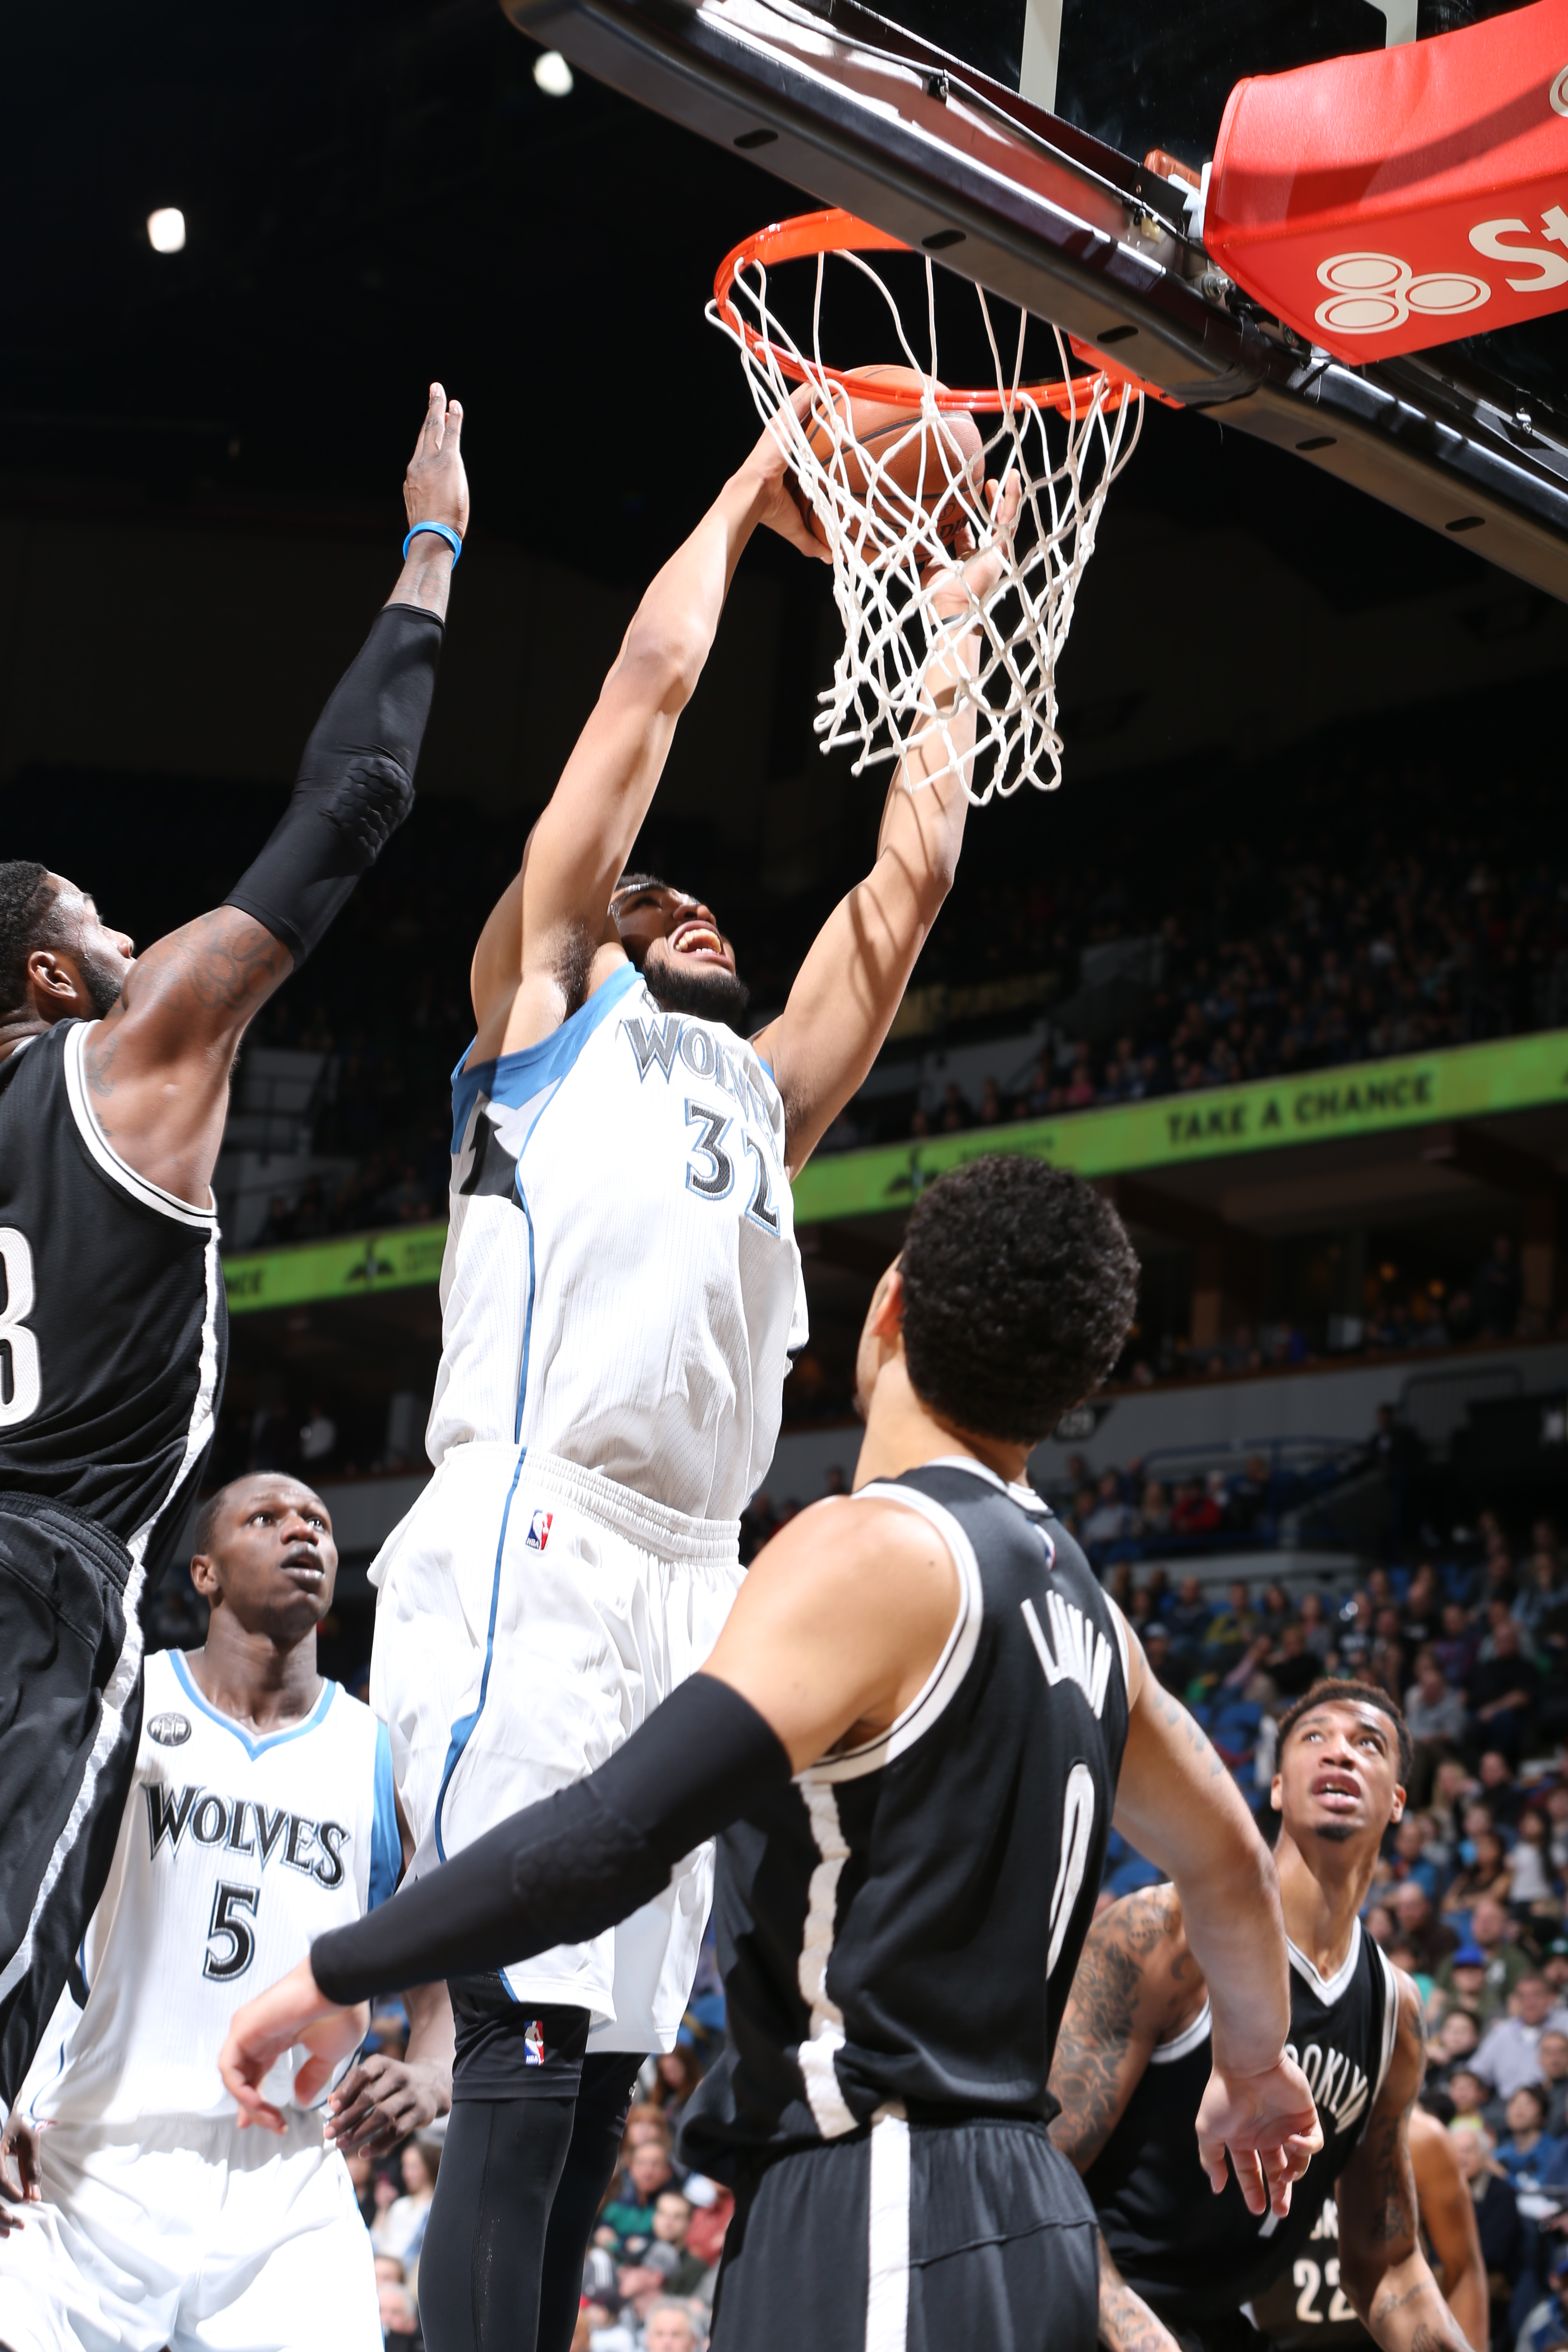 MINNEAPOLIS, MN - MARCH 5:  Karl-Anthony Towns #32 of the Minnesota Timberwolves dunks against the Brooklyn Nets on March 5, 2016 at Target Center in Minneapolis, Minnesota. (Photo by David Sherman/NBAE via Getty Images)